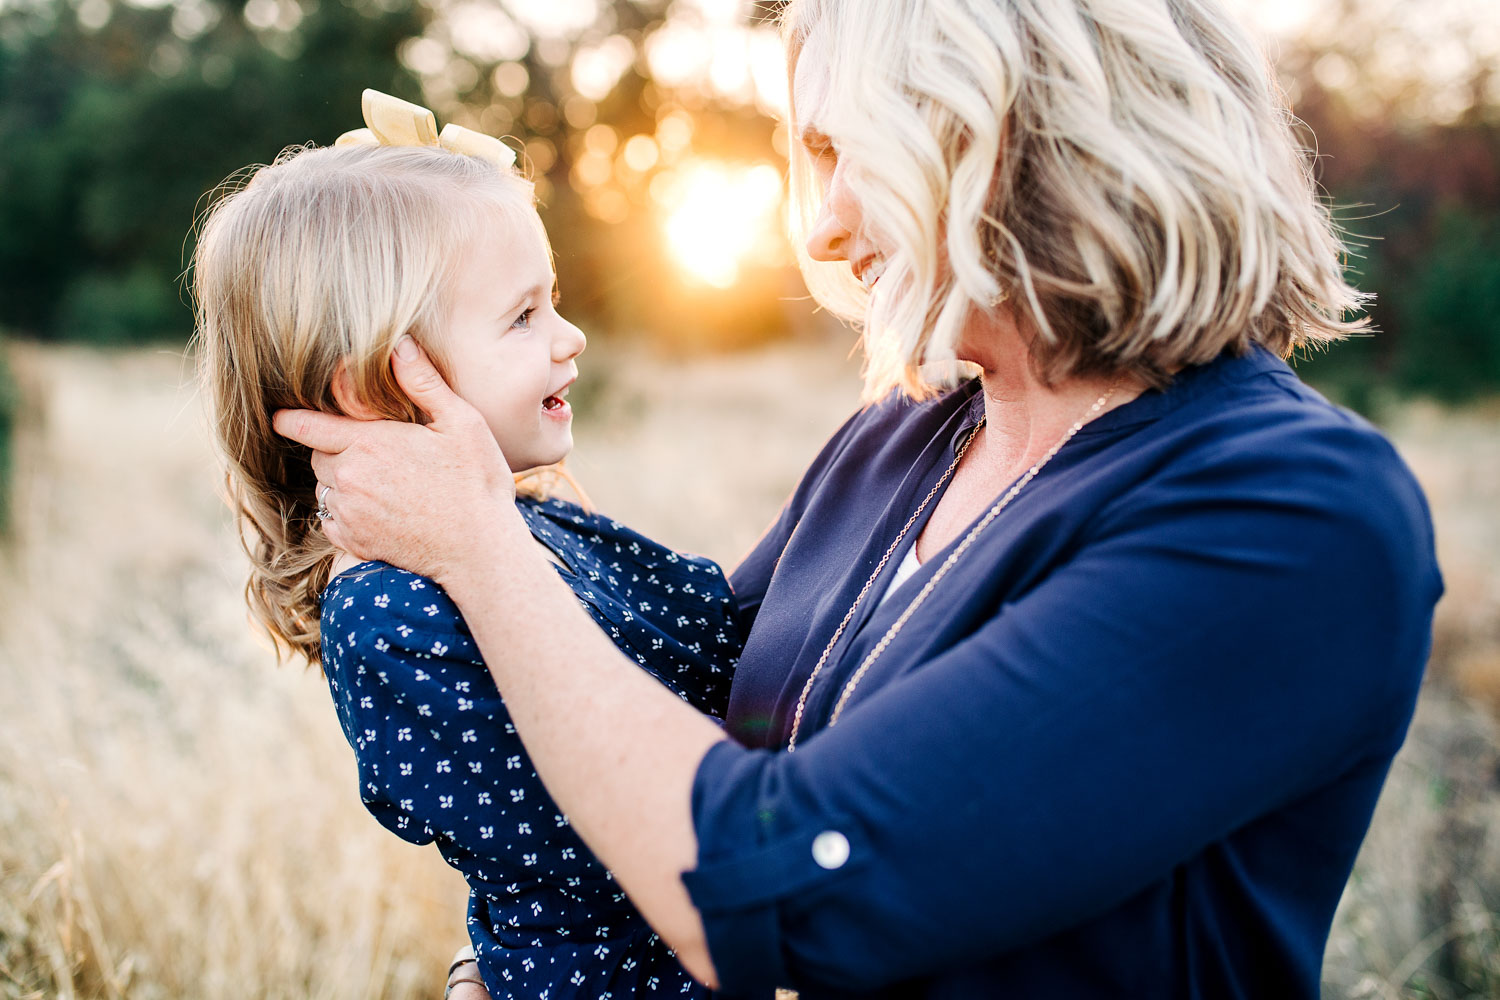 A mom and her daughter look at each other in some beautiful light during golden hour family portraits with Amy Wright Photography in Roseville, California.